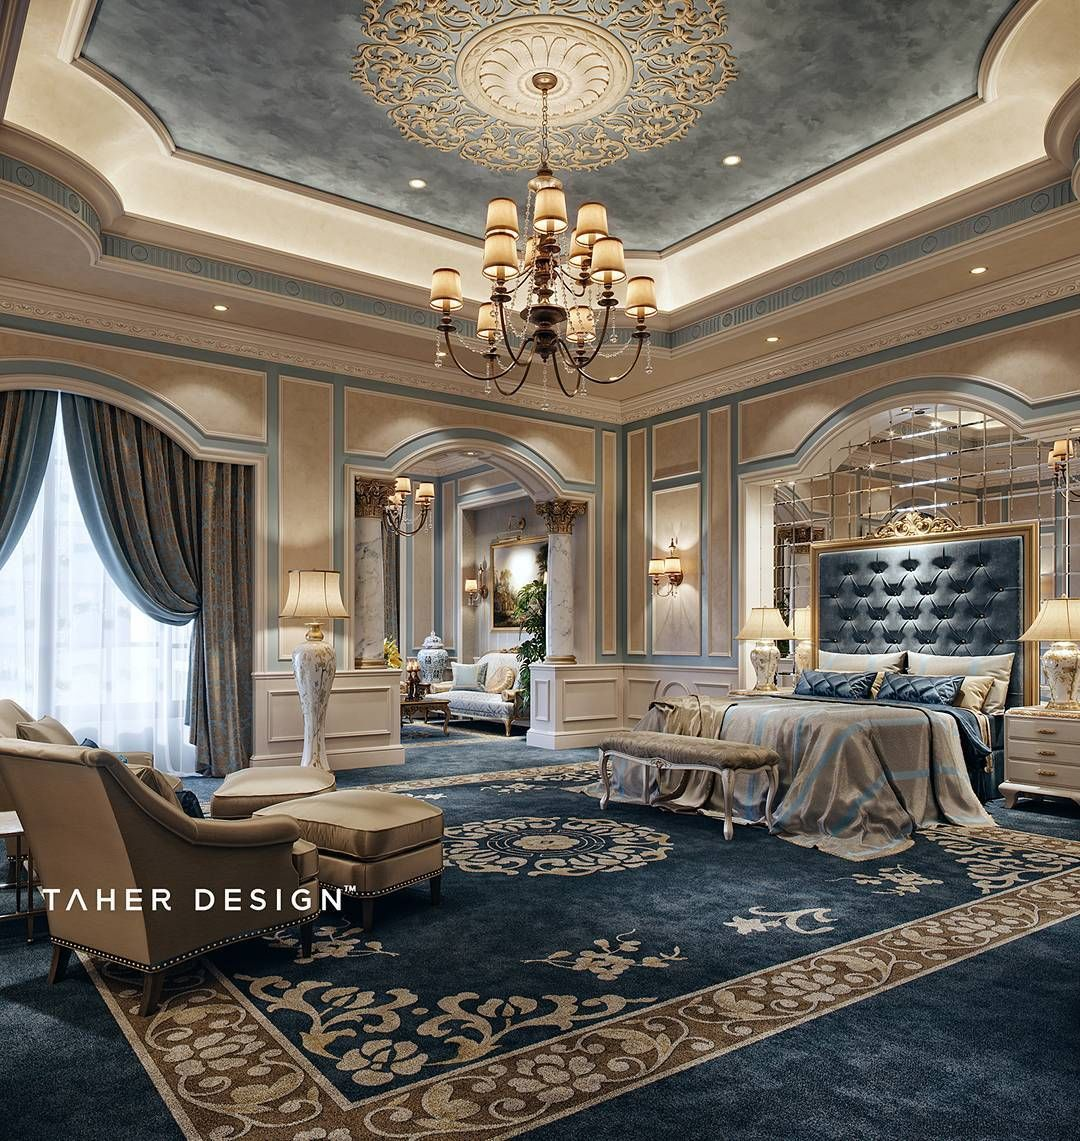 Tel : +20 120 580 0646 Contact@taherstudio.com #mansion #interior # Interiordesign #bedroom #masterbedroom #Taher_studio #muhammadtaher ...